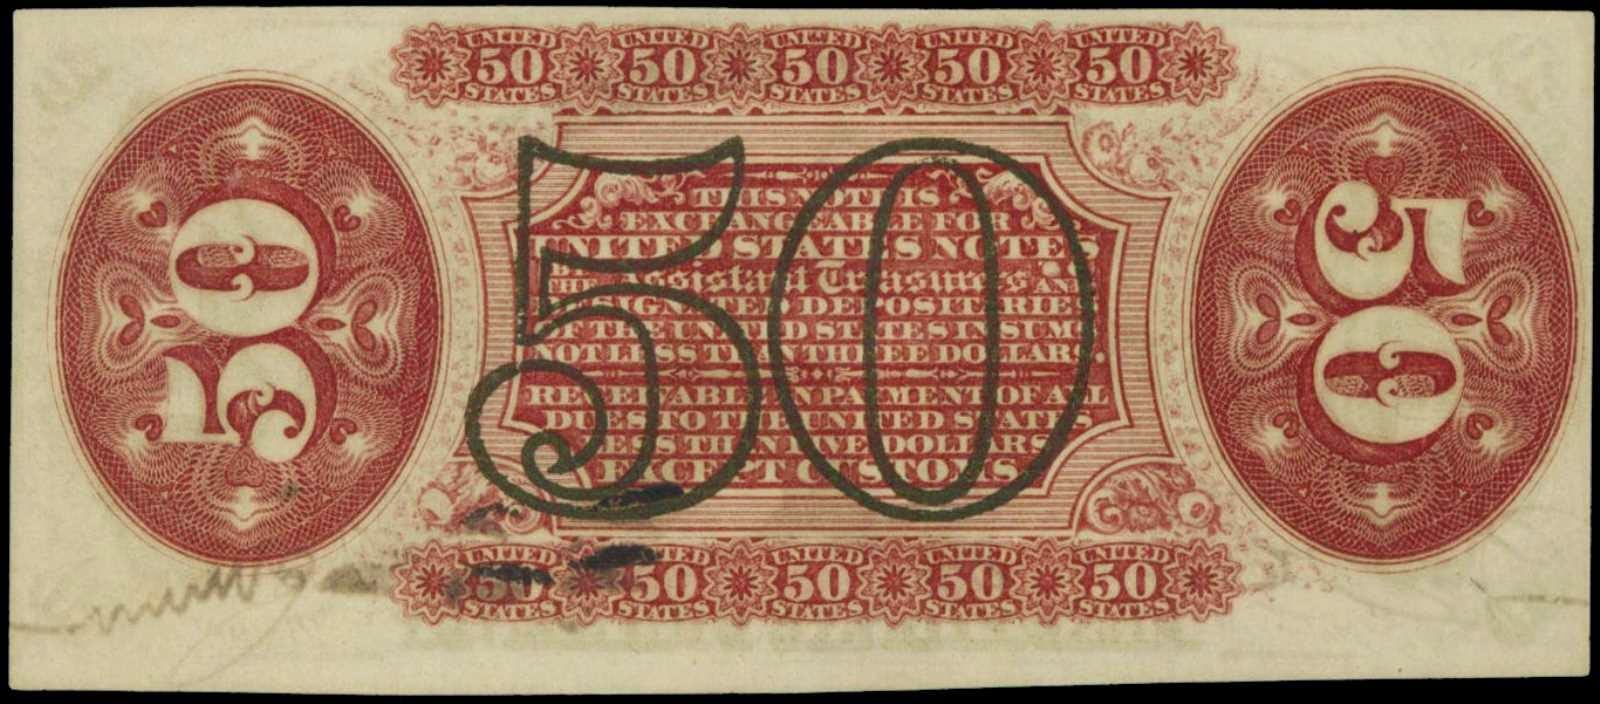 Fifty Cents Fractional Currency